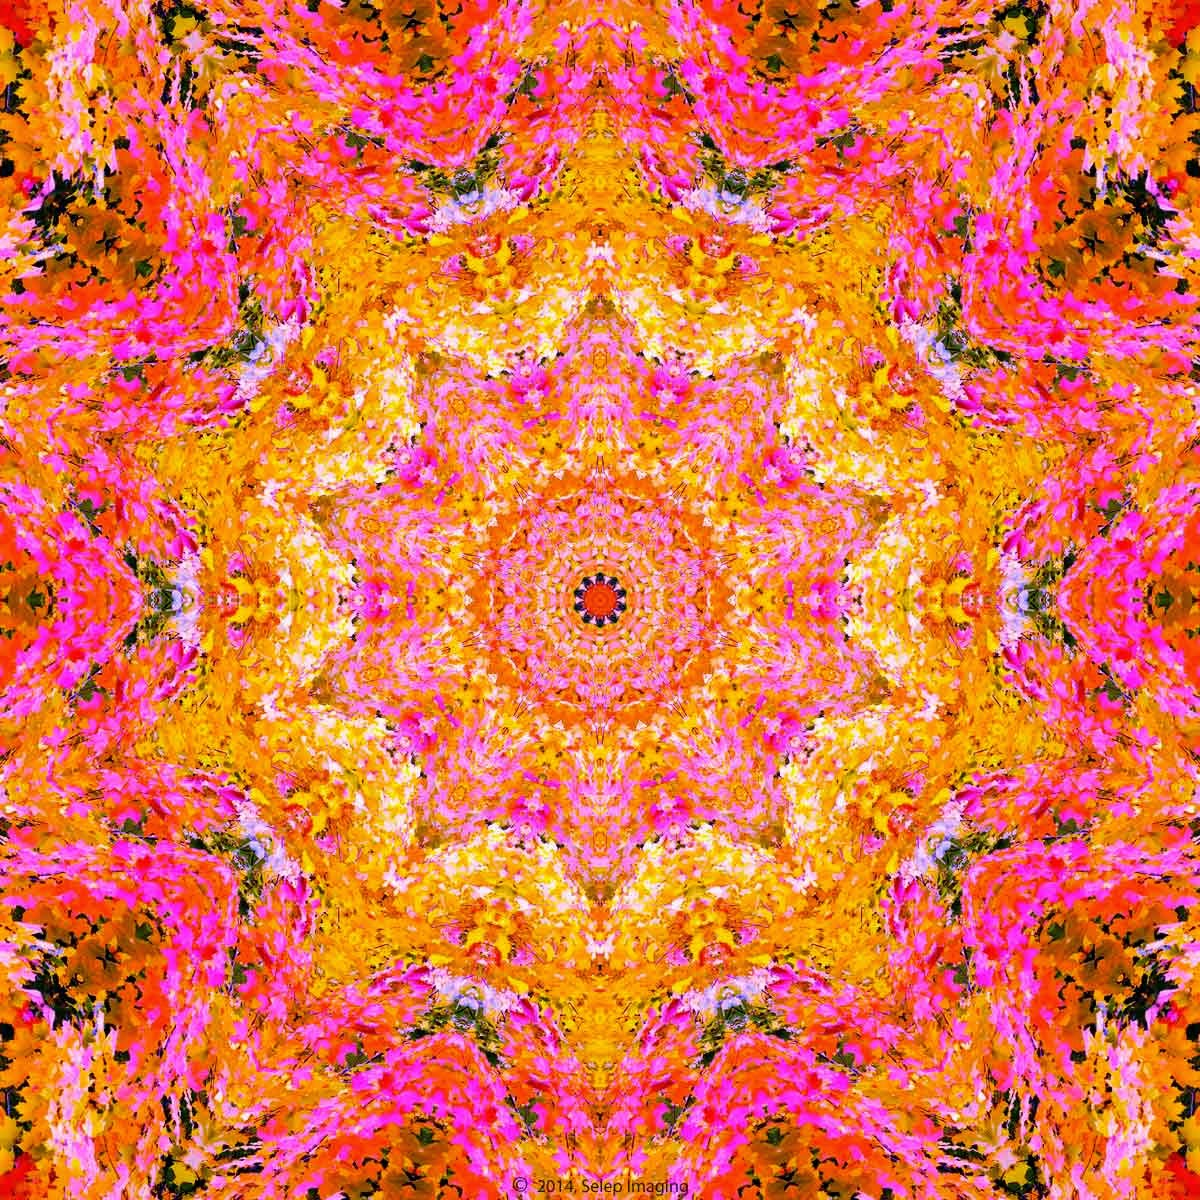 Kaleidoscope desktop background by Jeanne Selep